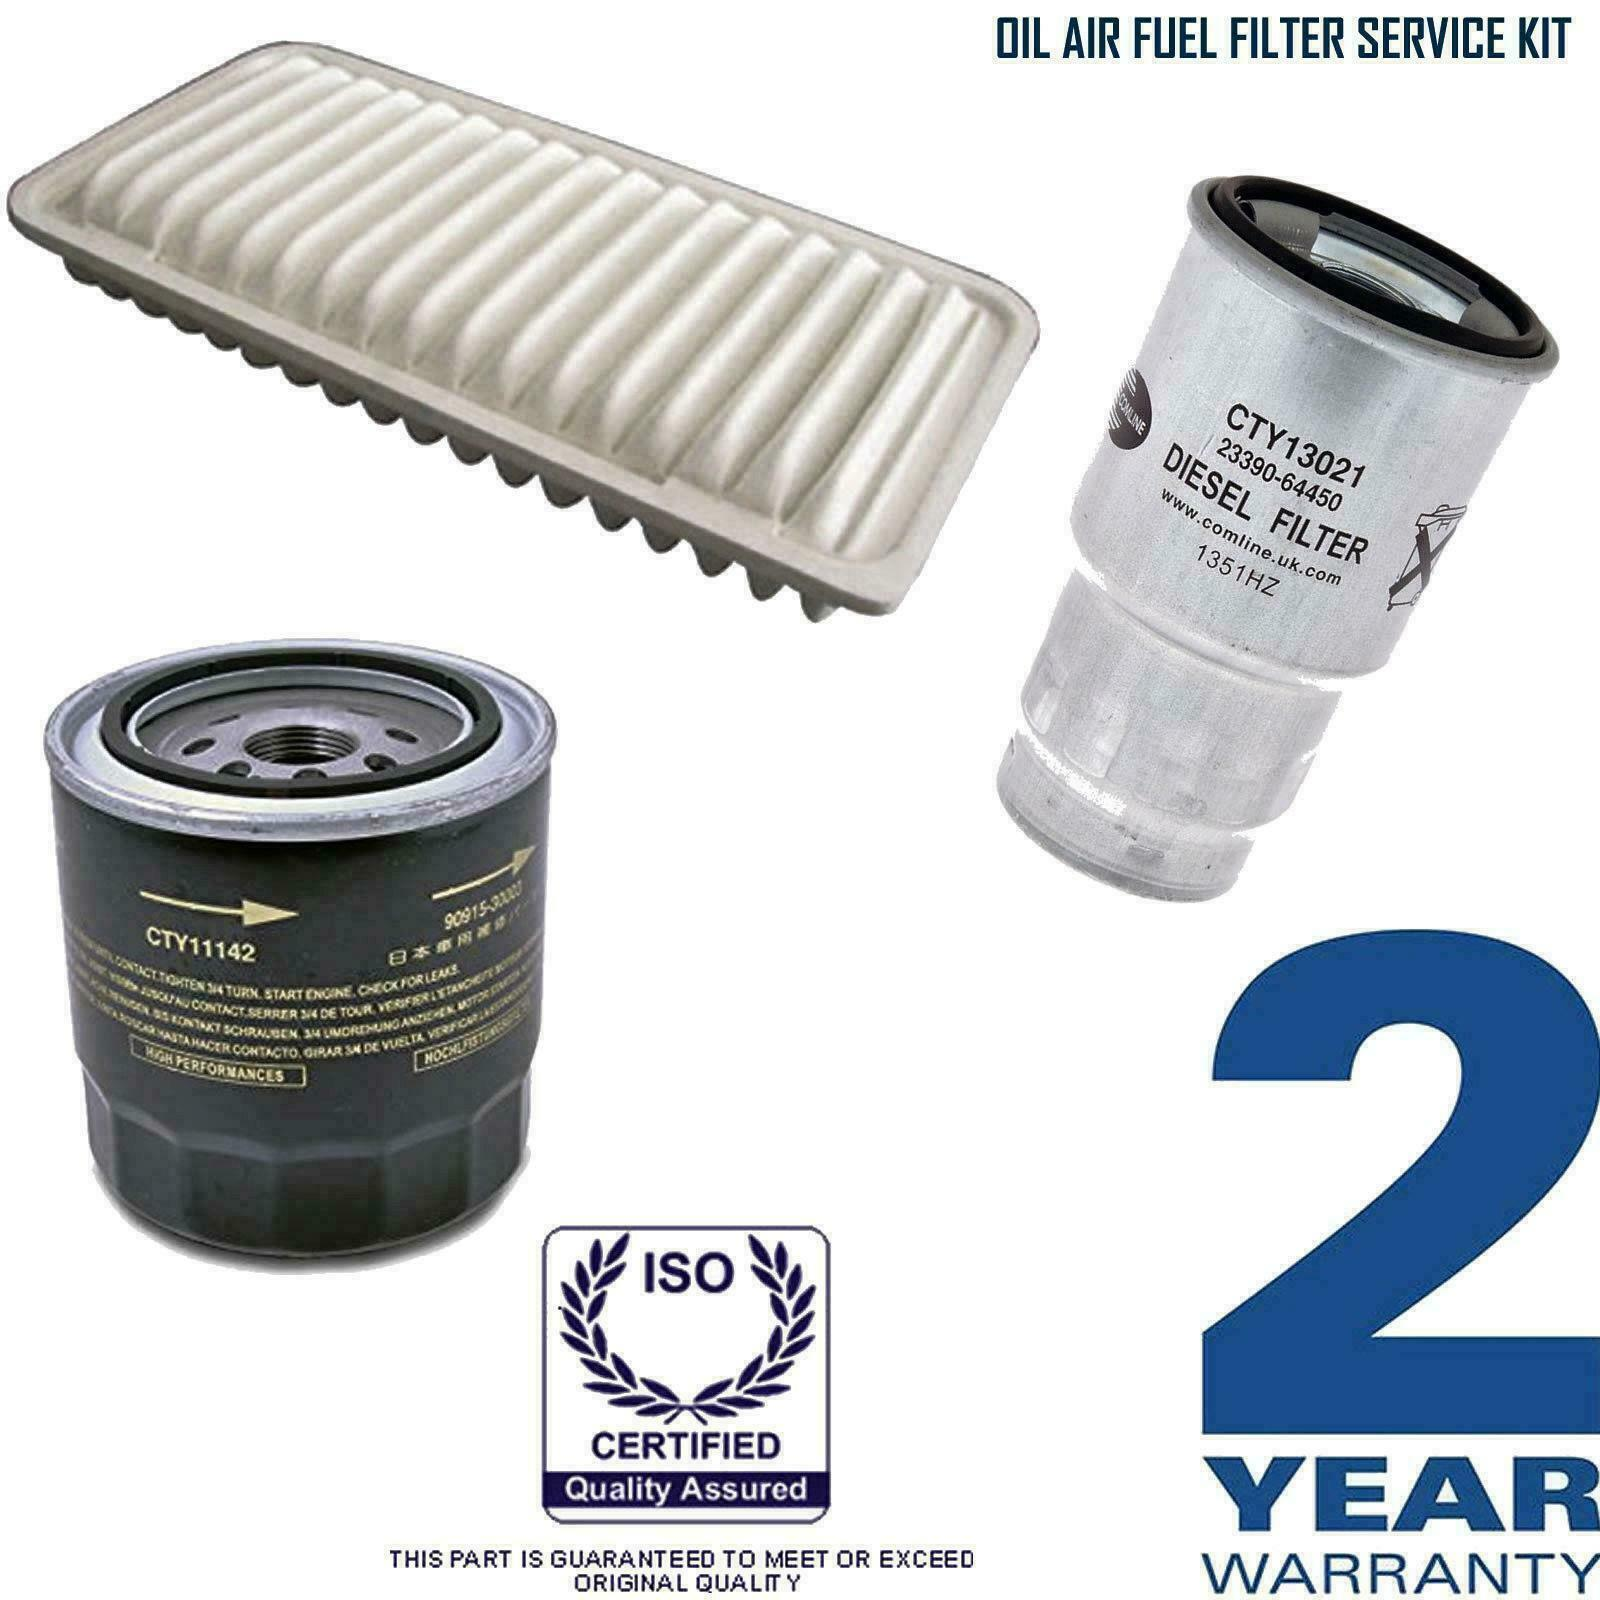 Toyota Corolla Verso 20 D4d T Spirit Oil Air Fuel Filter 1 Of 1free Shipping